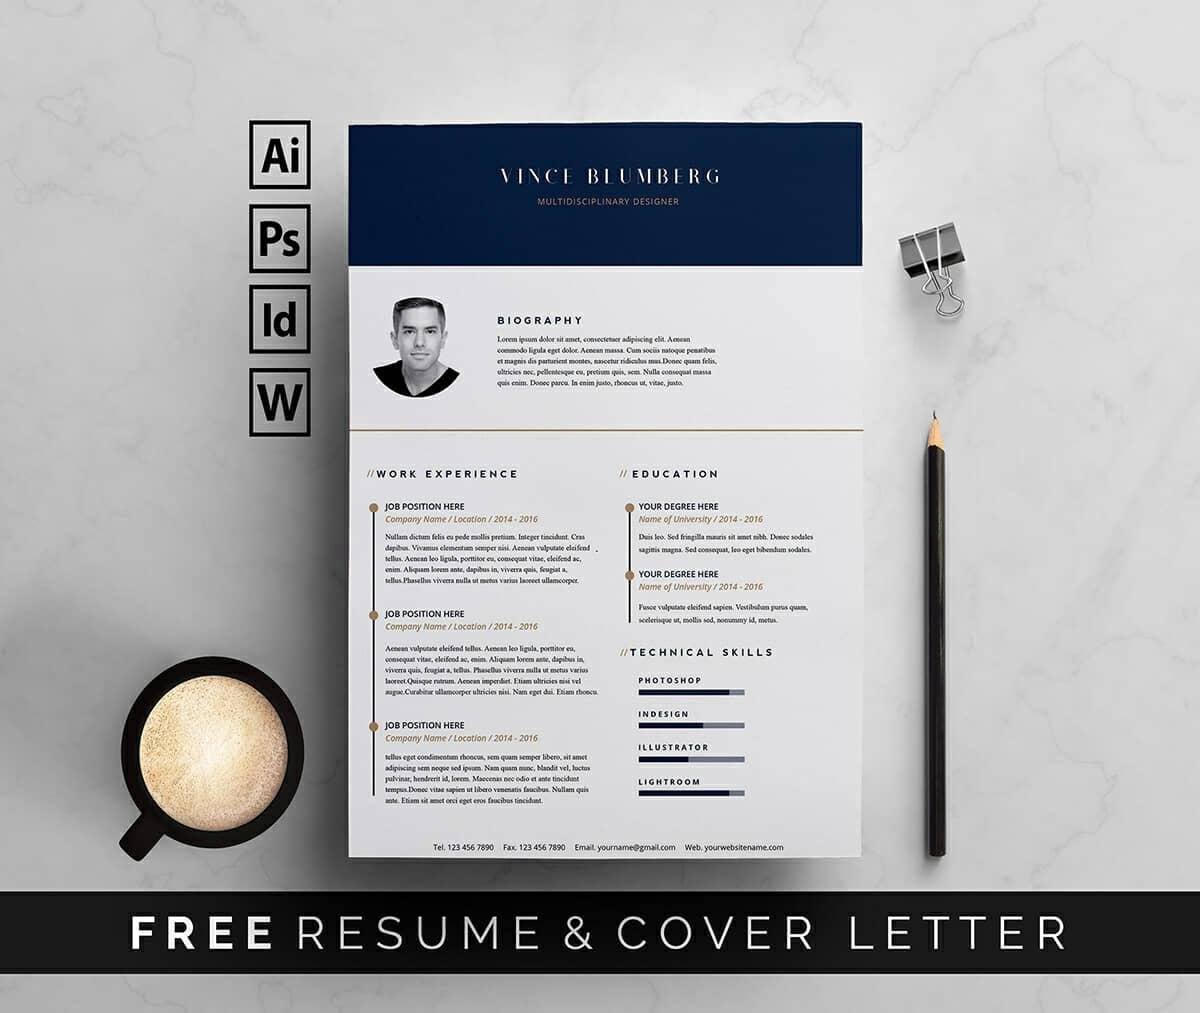 resume templates for microsoft word free professional access skills system support Resume Professional Resume Templates 2018 Free Download